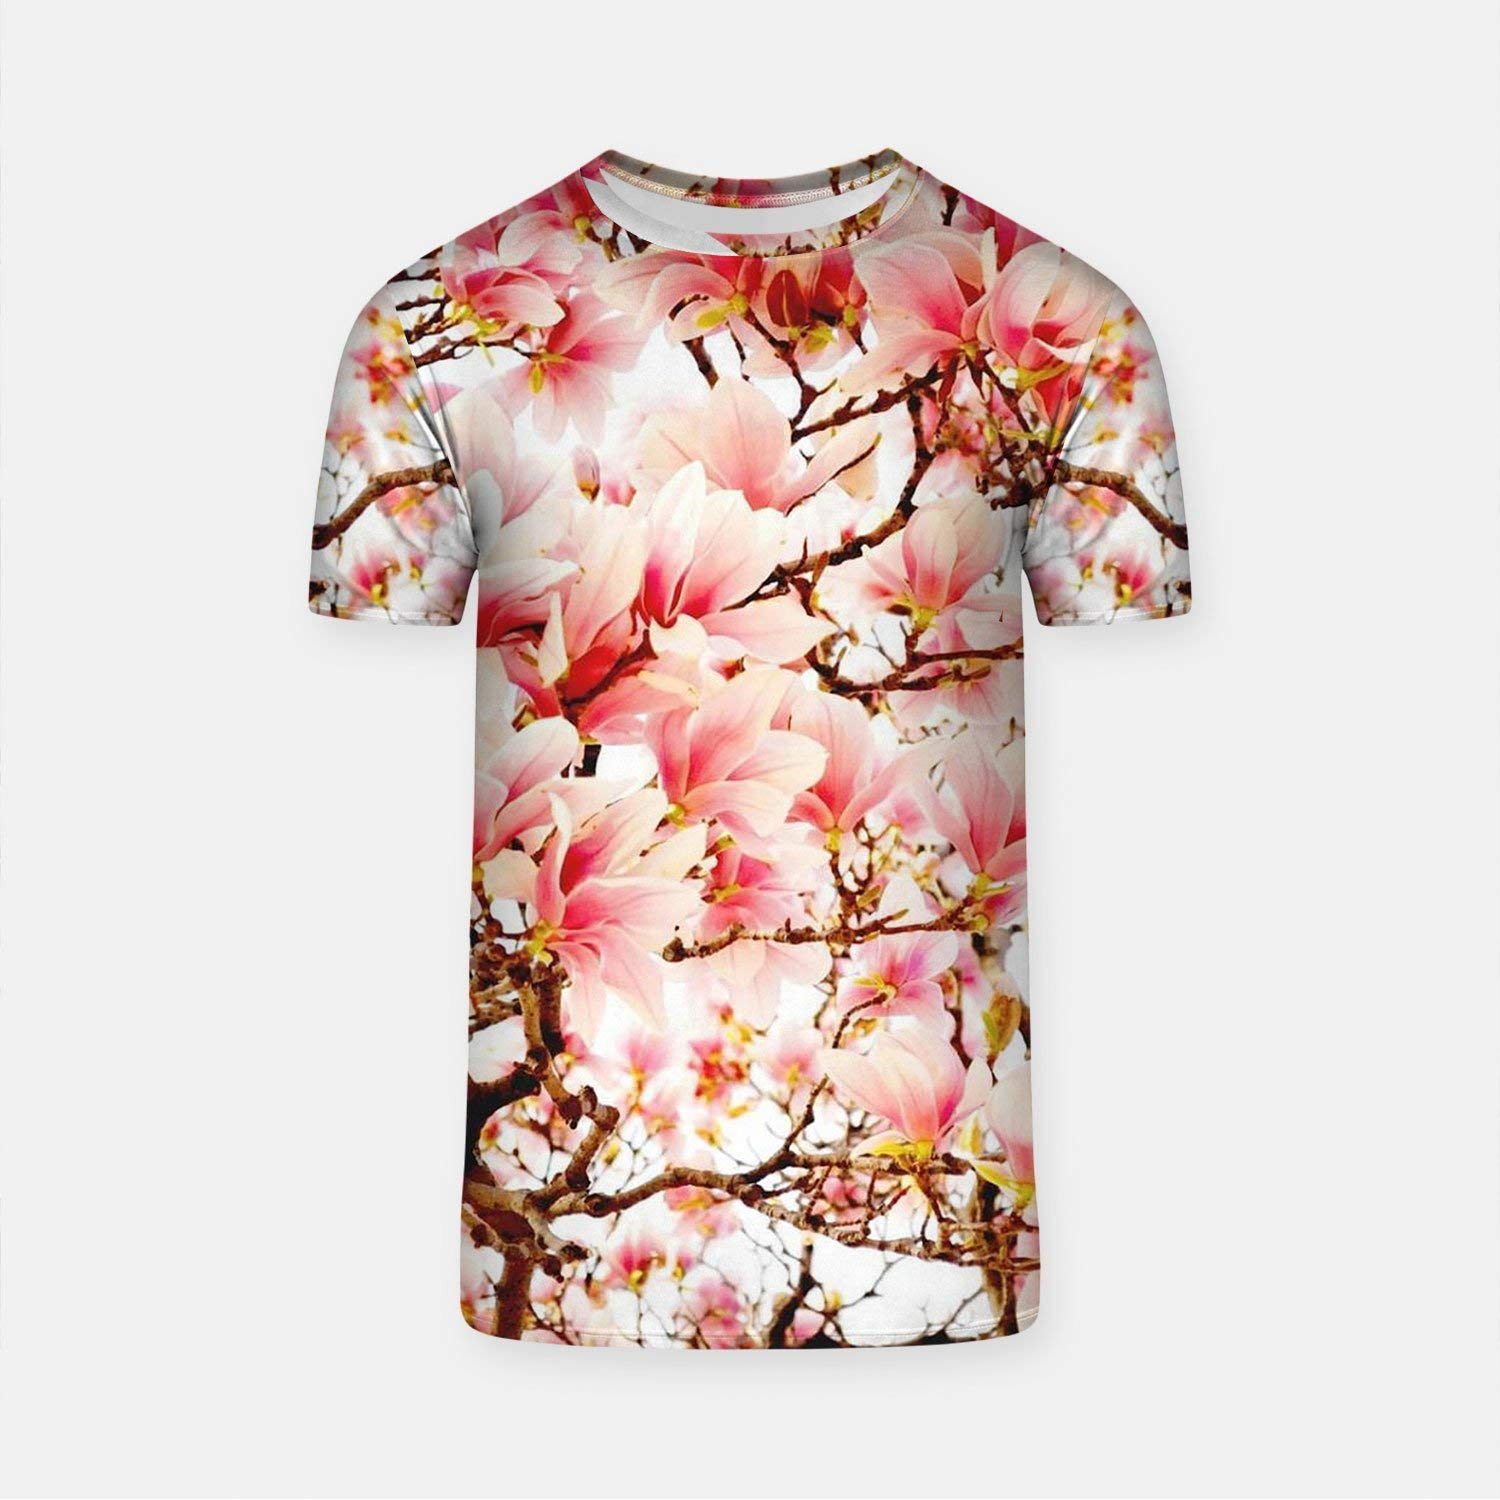 7fae225129 WolfCases Cherry Tree Cool T-Shirt Japanese Style Sakura Blossom Tee Every  Day T Shirt for Men Large Sizes ClothingOur T-SHIRTS: - all t-shirts are ...